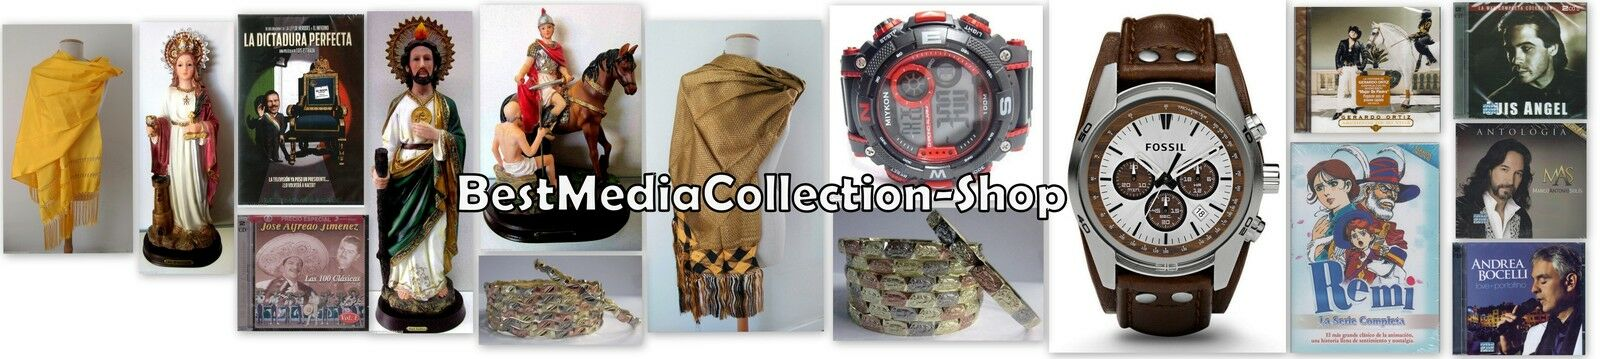 Bestmediacollection